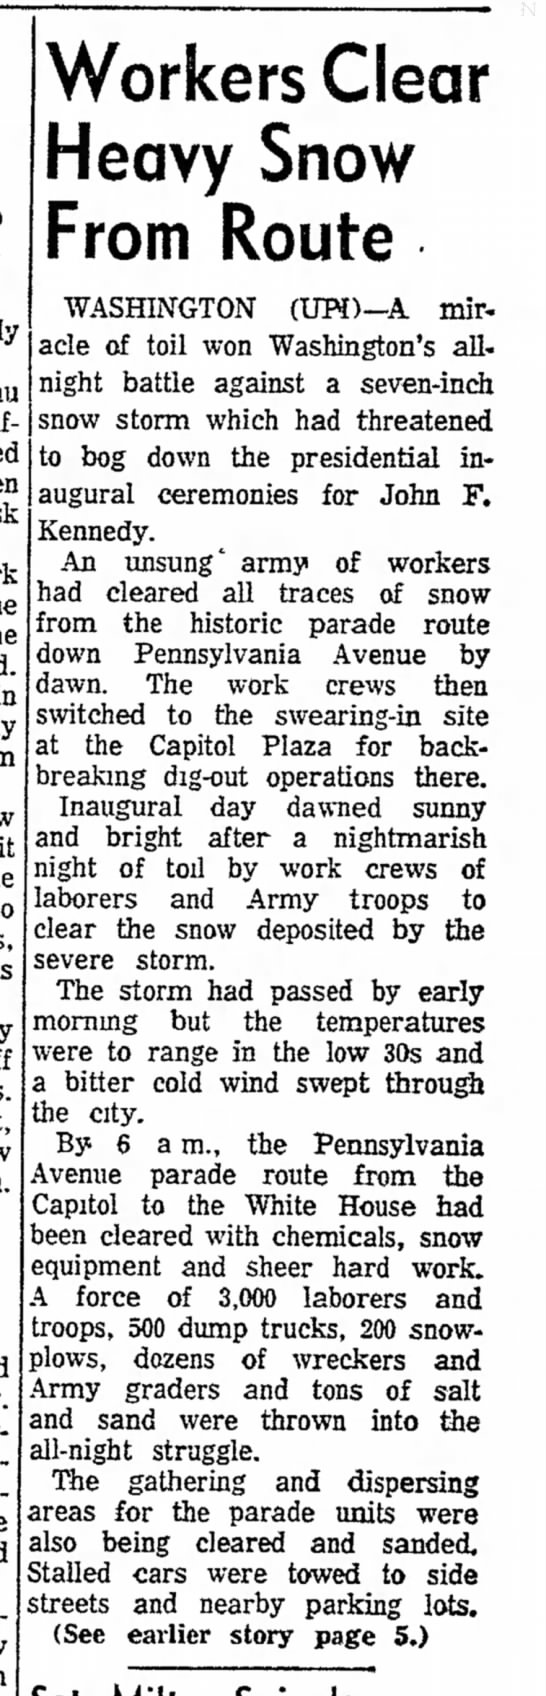 Workers clear heavy snow for Kennedy inauguration, 1961 - fallen York the it boy off are Workers Clear...